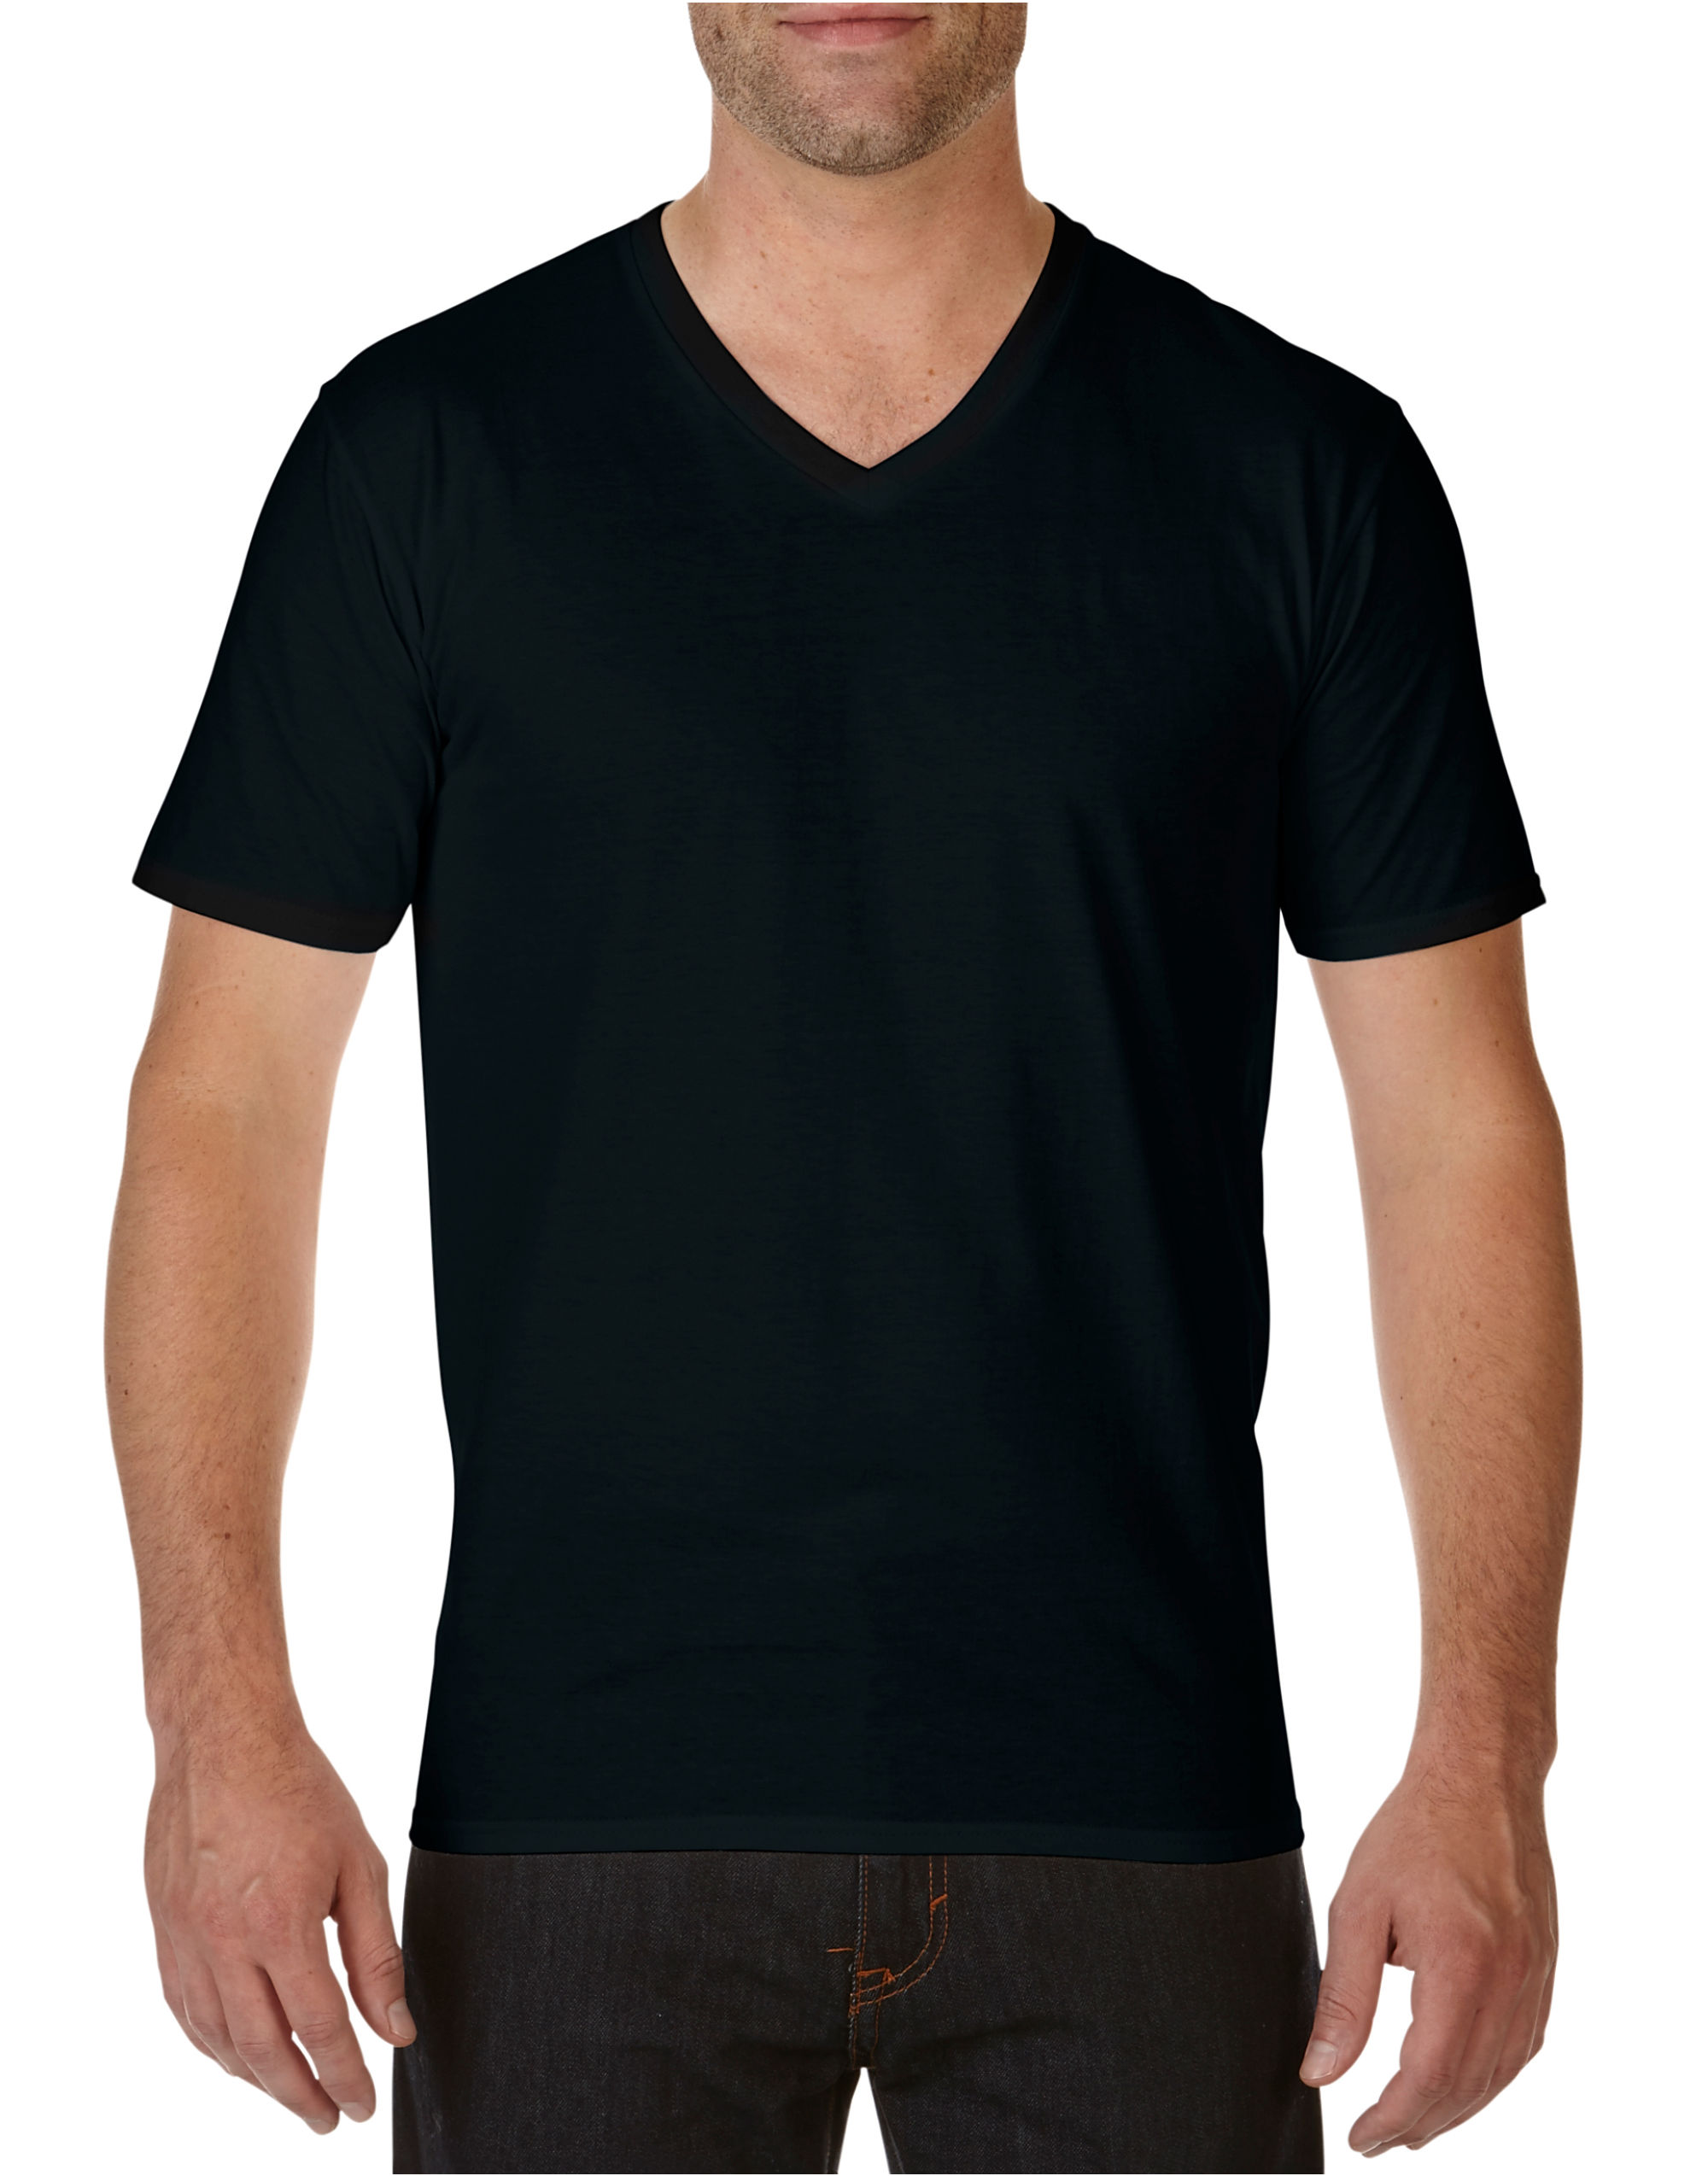 Premium Cotton V Neck Tee